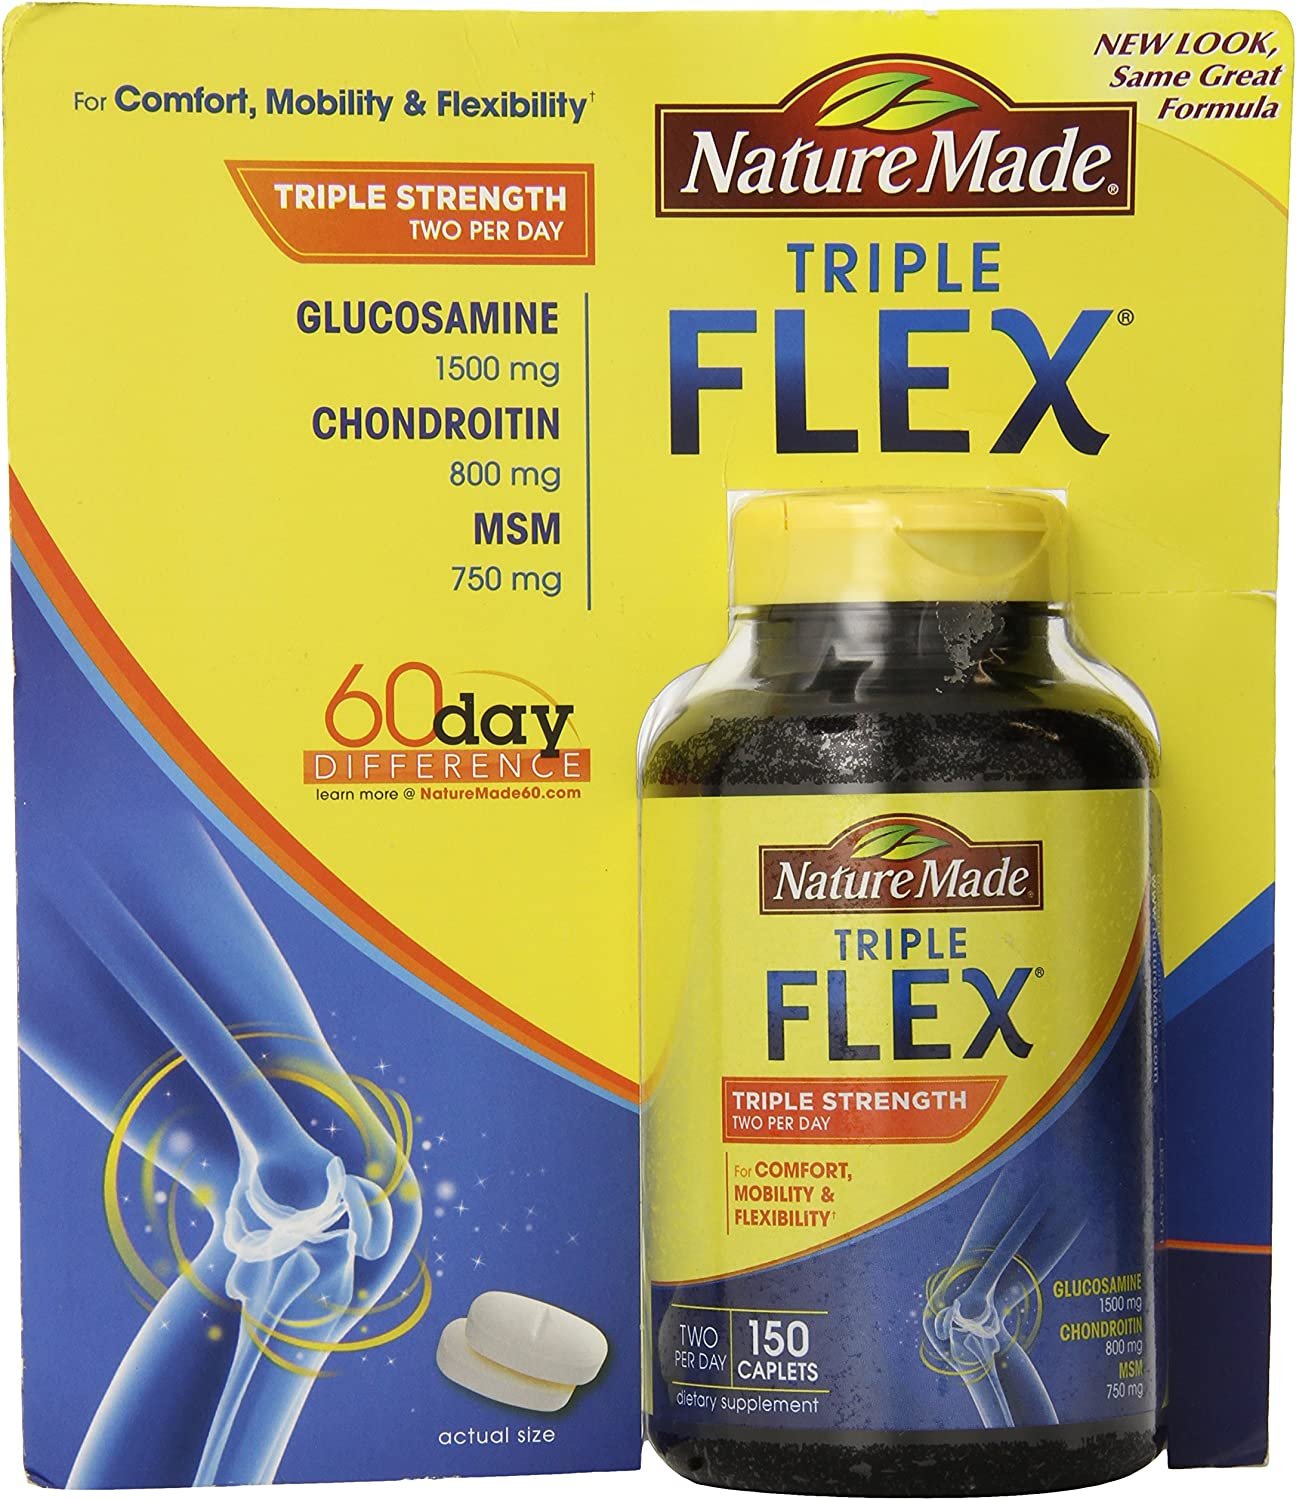 Nature Made TripleFlex Triple Strength 150 Caplets